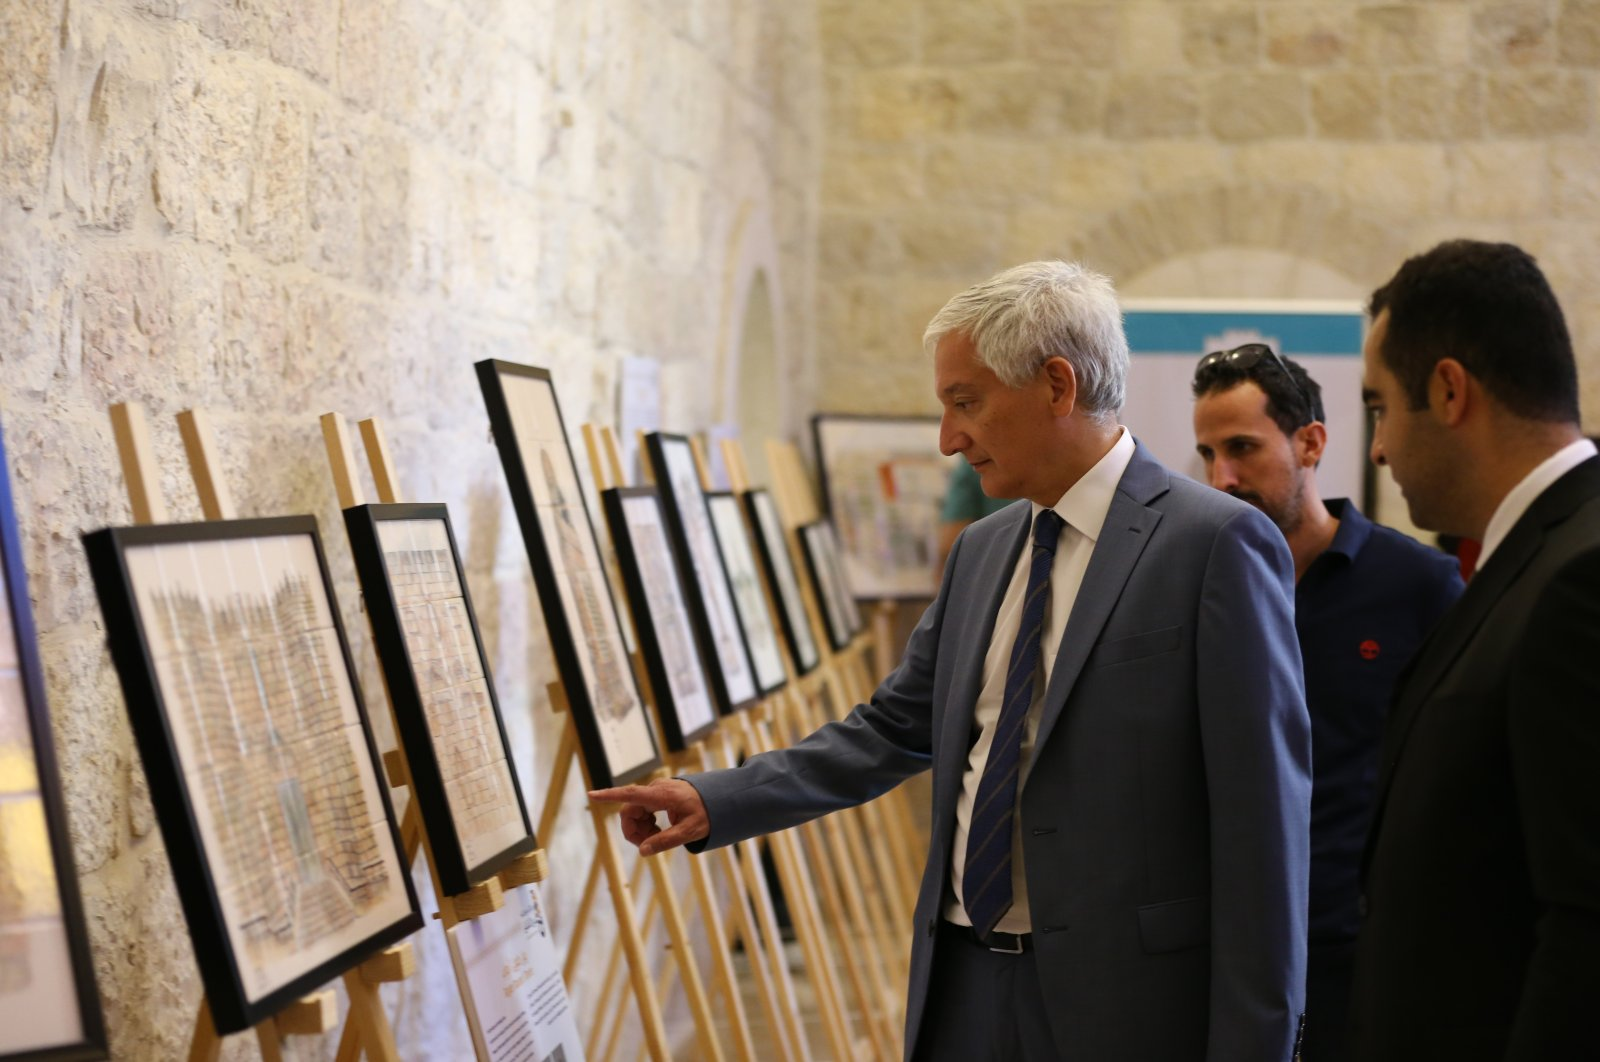 Ahmet Rıza Demirer, Turkey's consul general in Jerusalem, visits an exhibition by Palestinian artists in East Jerusalem, occupied Palestine, Sept. 20, 2021. (AA Photo)